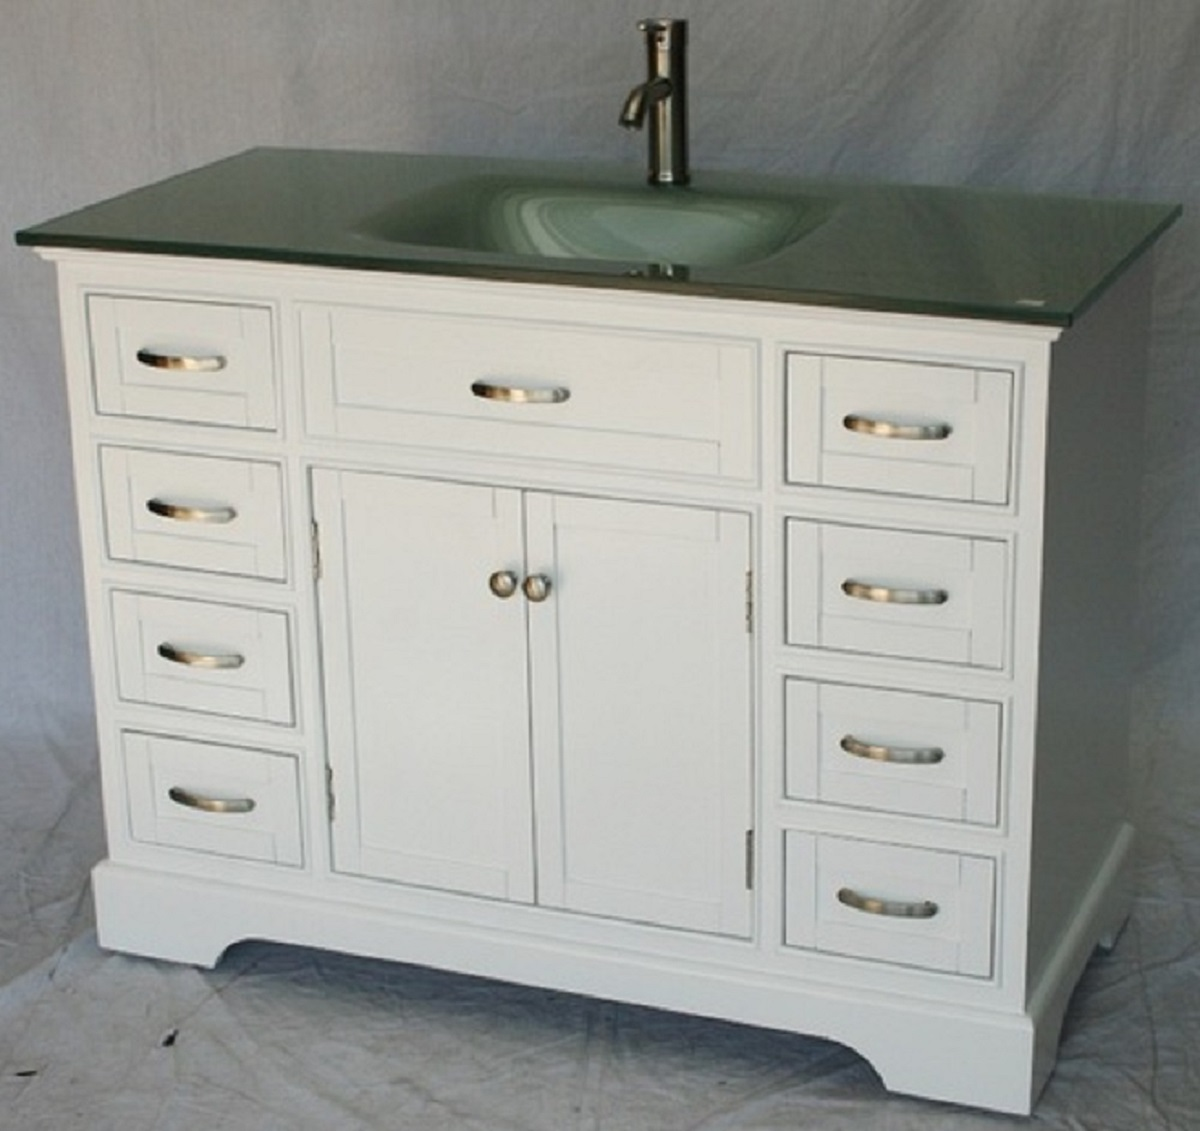 46 Inch Bathroom Vanity Transitional Shaker White Color With Glass Top (46